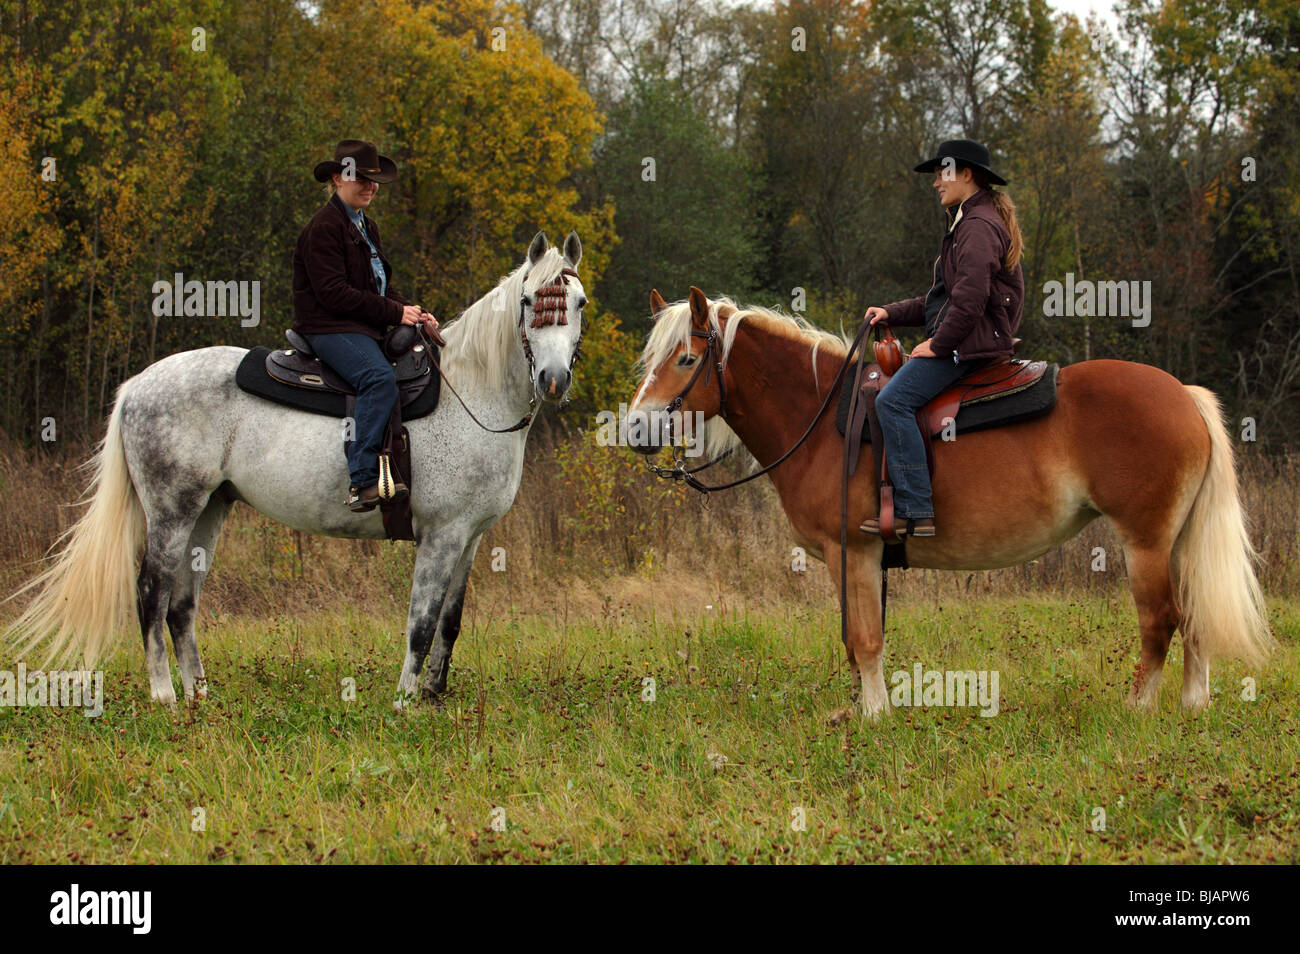 Two cowgirl and andalusian horse (Equus ferus caballus) Stock Photo